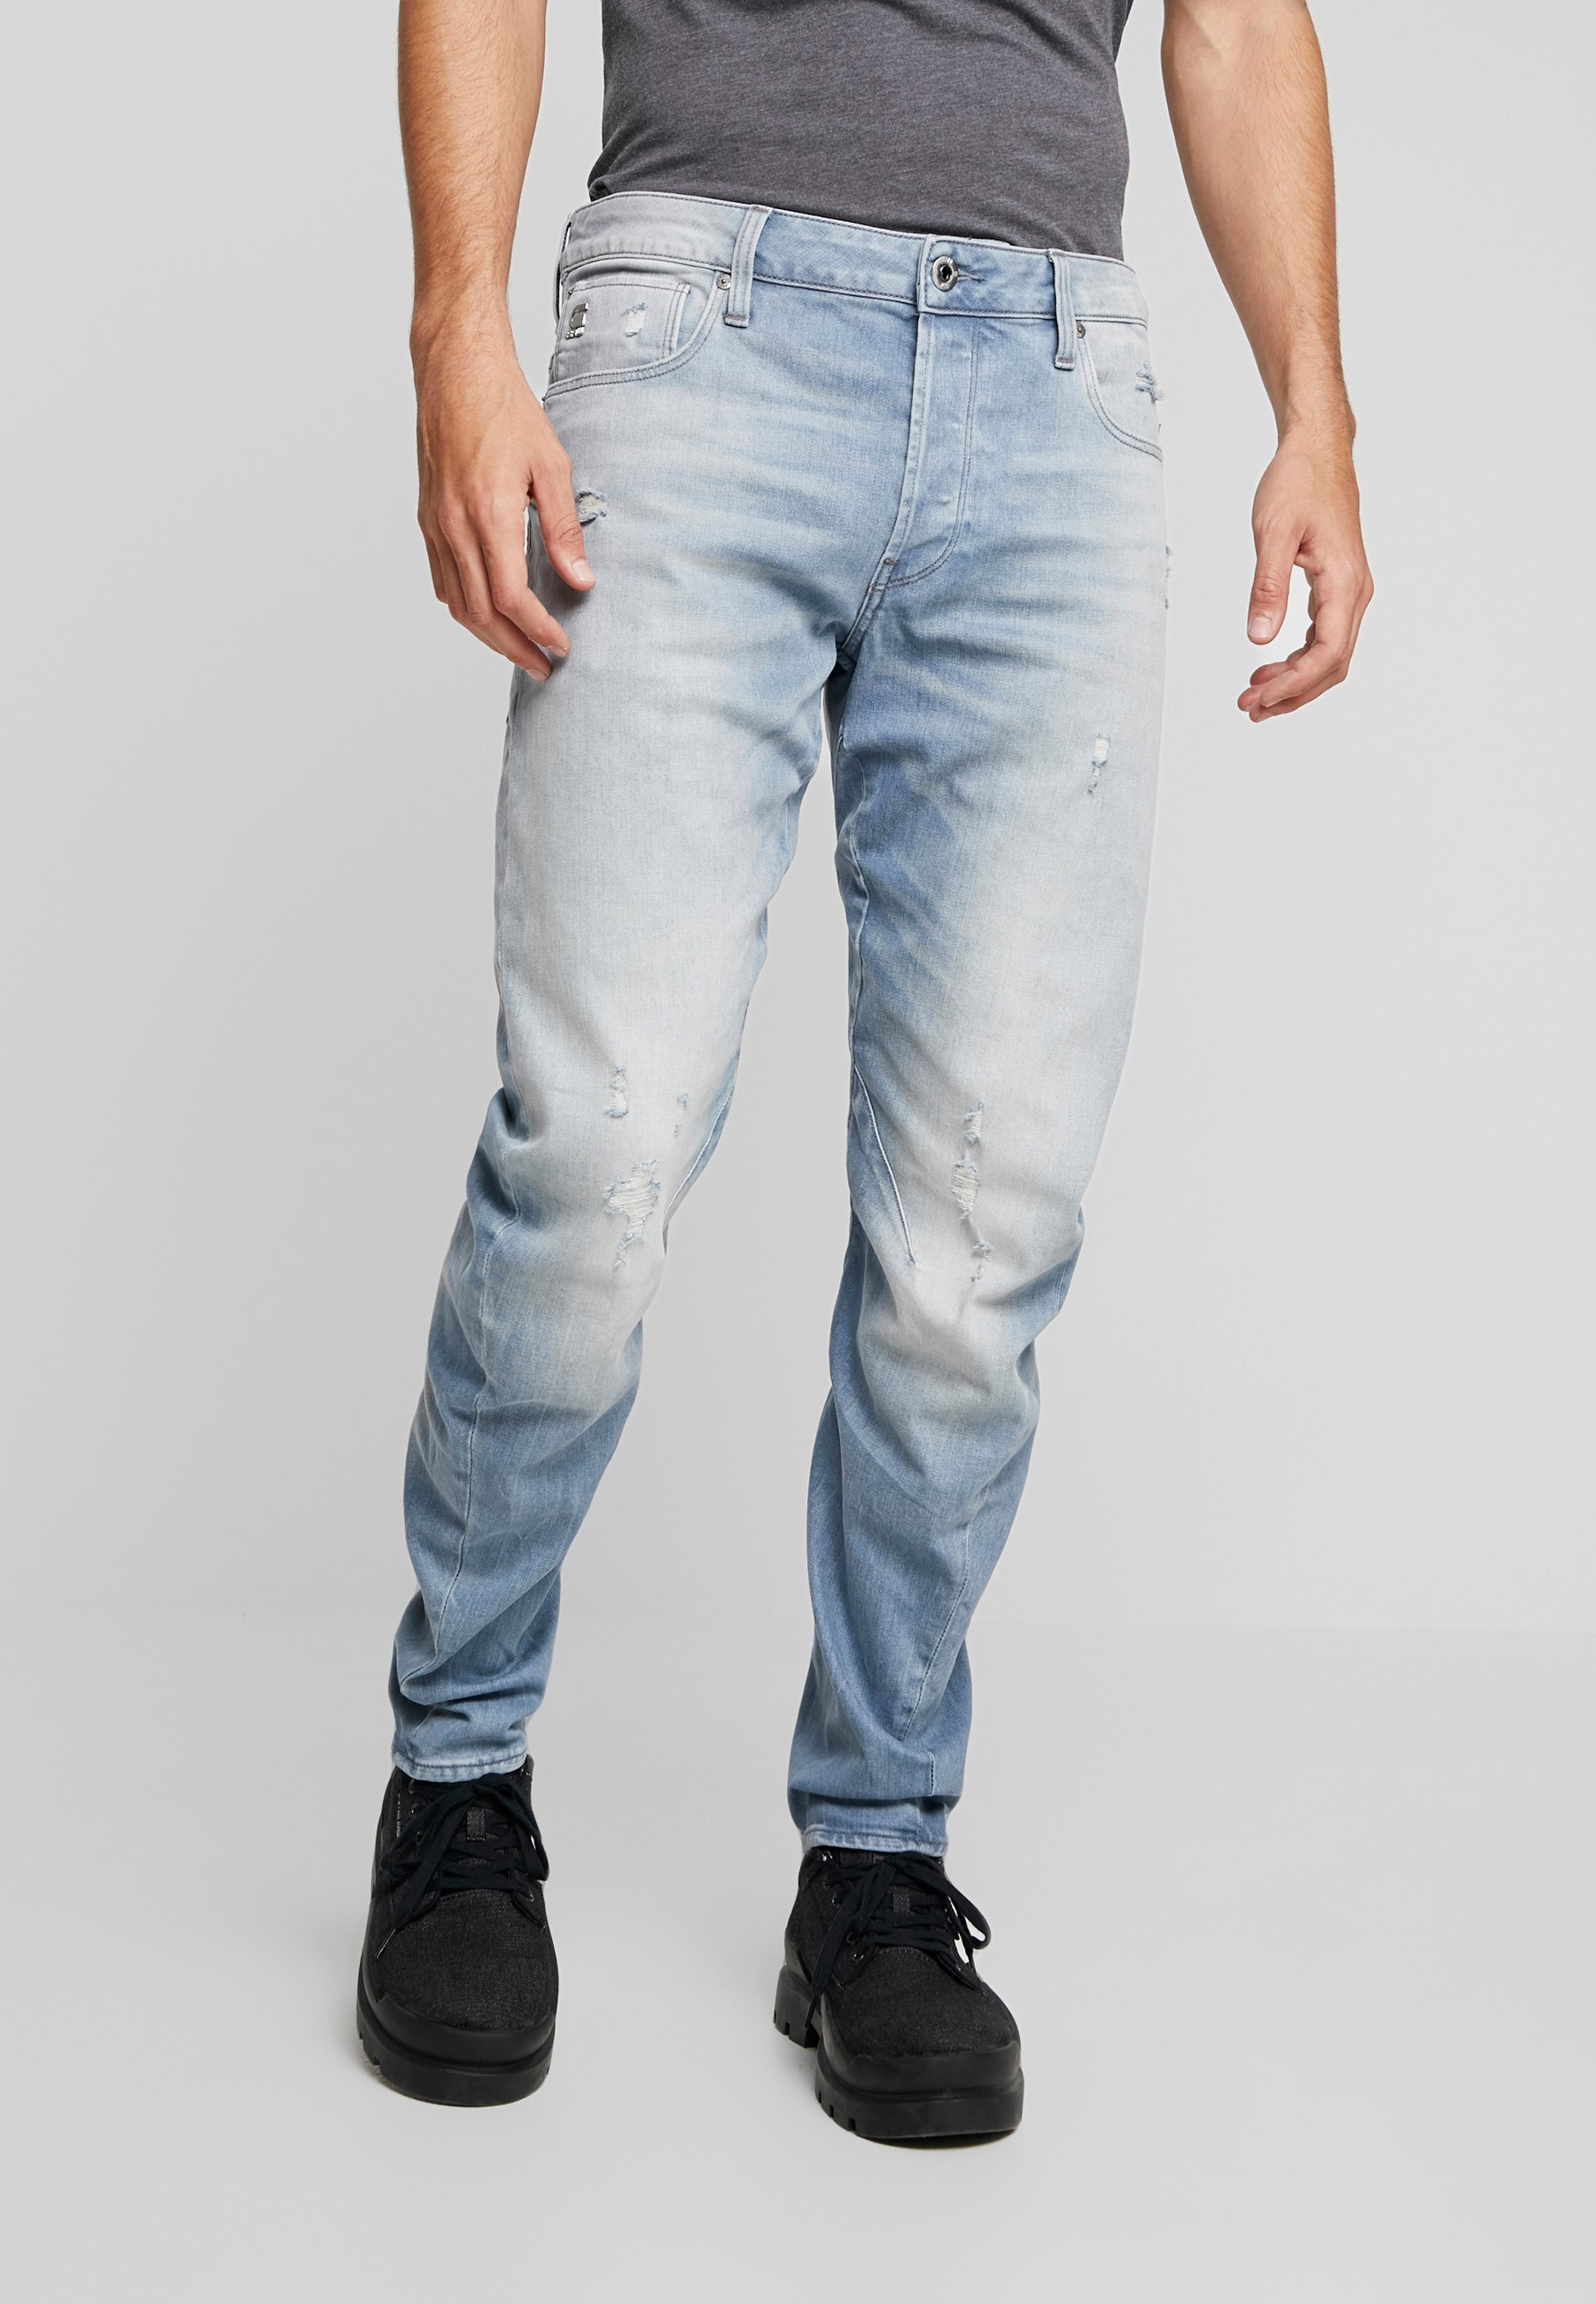 G star FitJean Slim Denim blue Light Arc 3d R4q3Ac5jLS